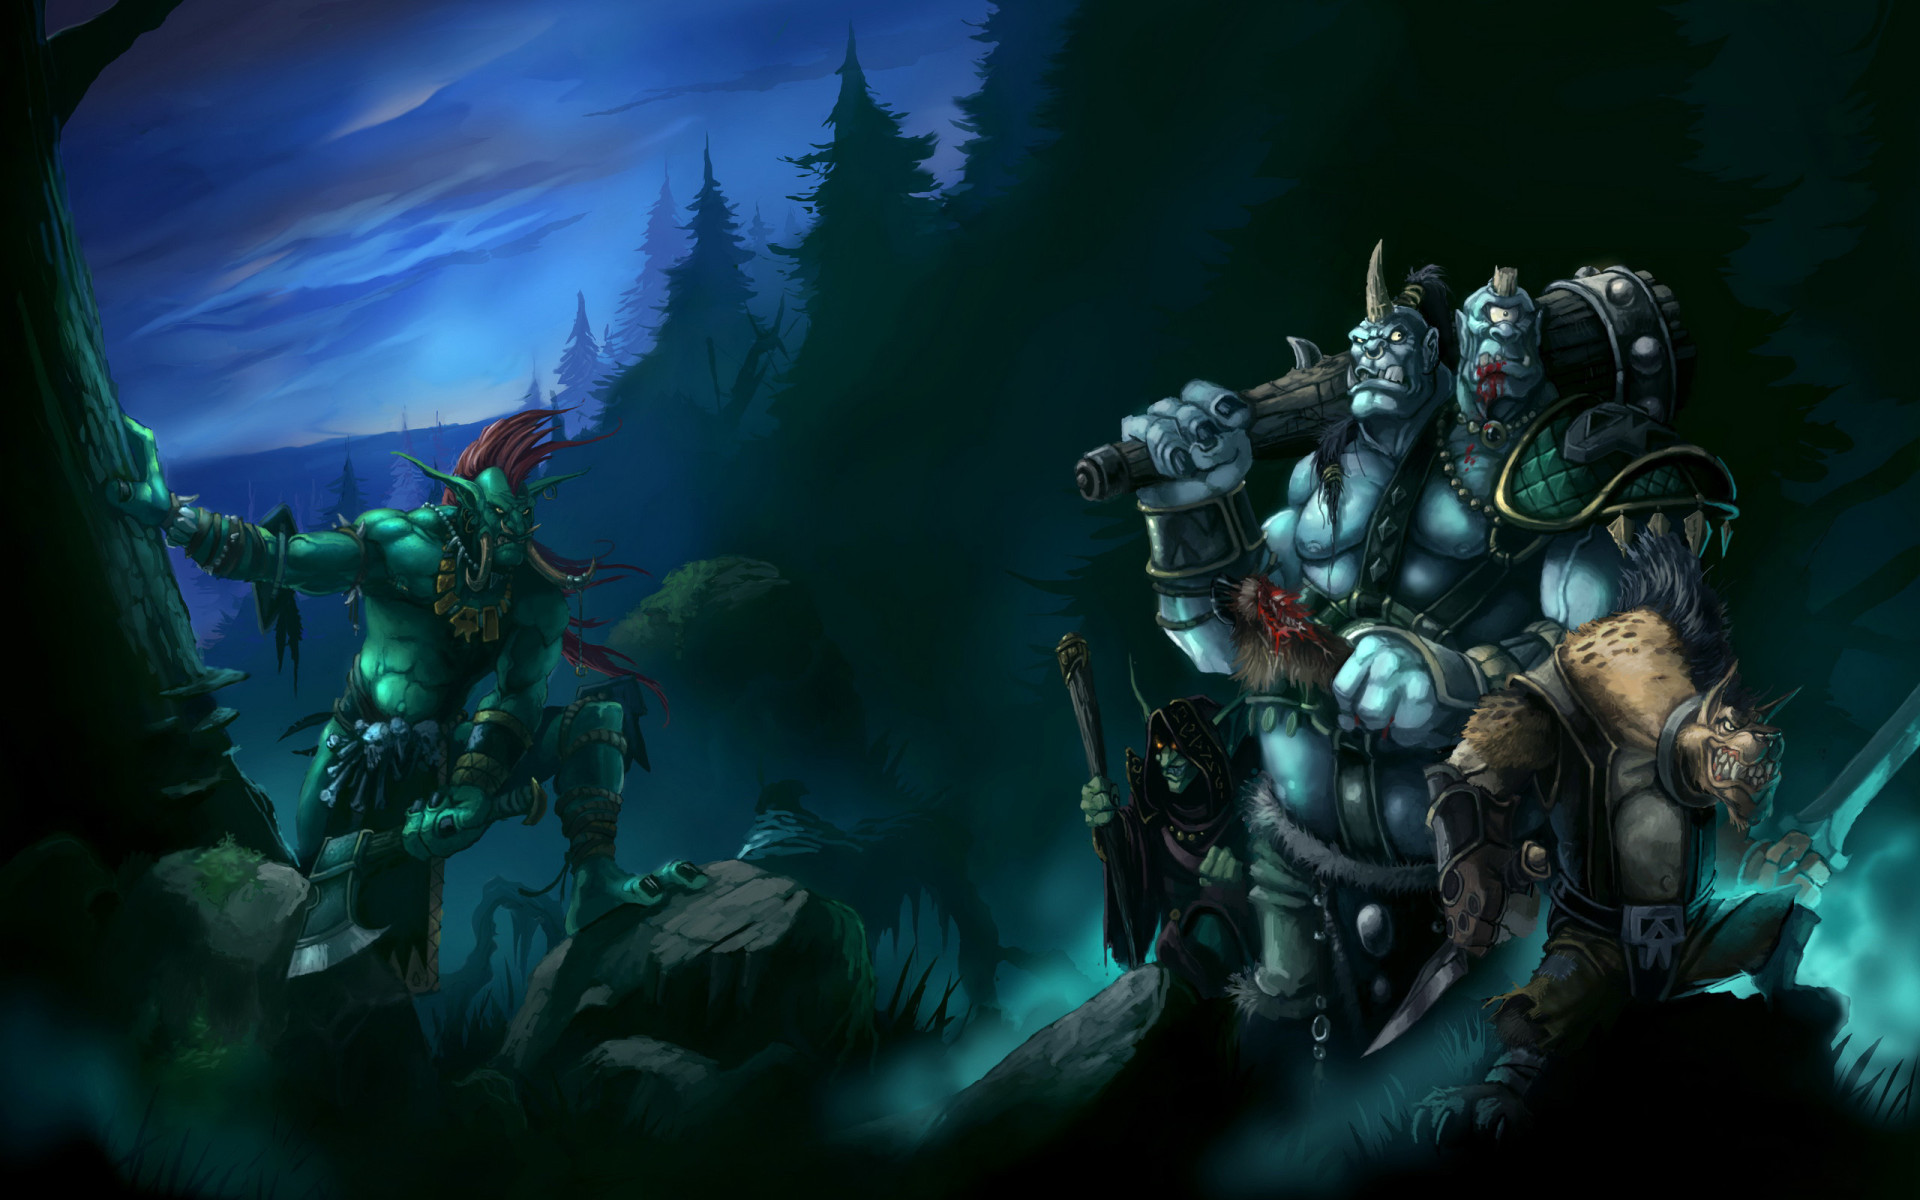 Games_World_of_Warcraft._Trolls_022139_.jpg - -